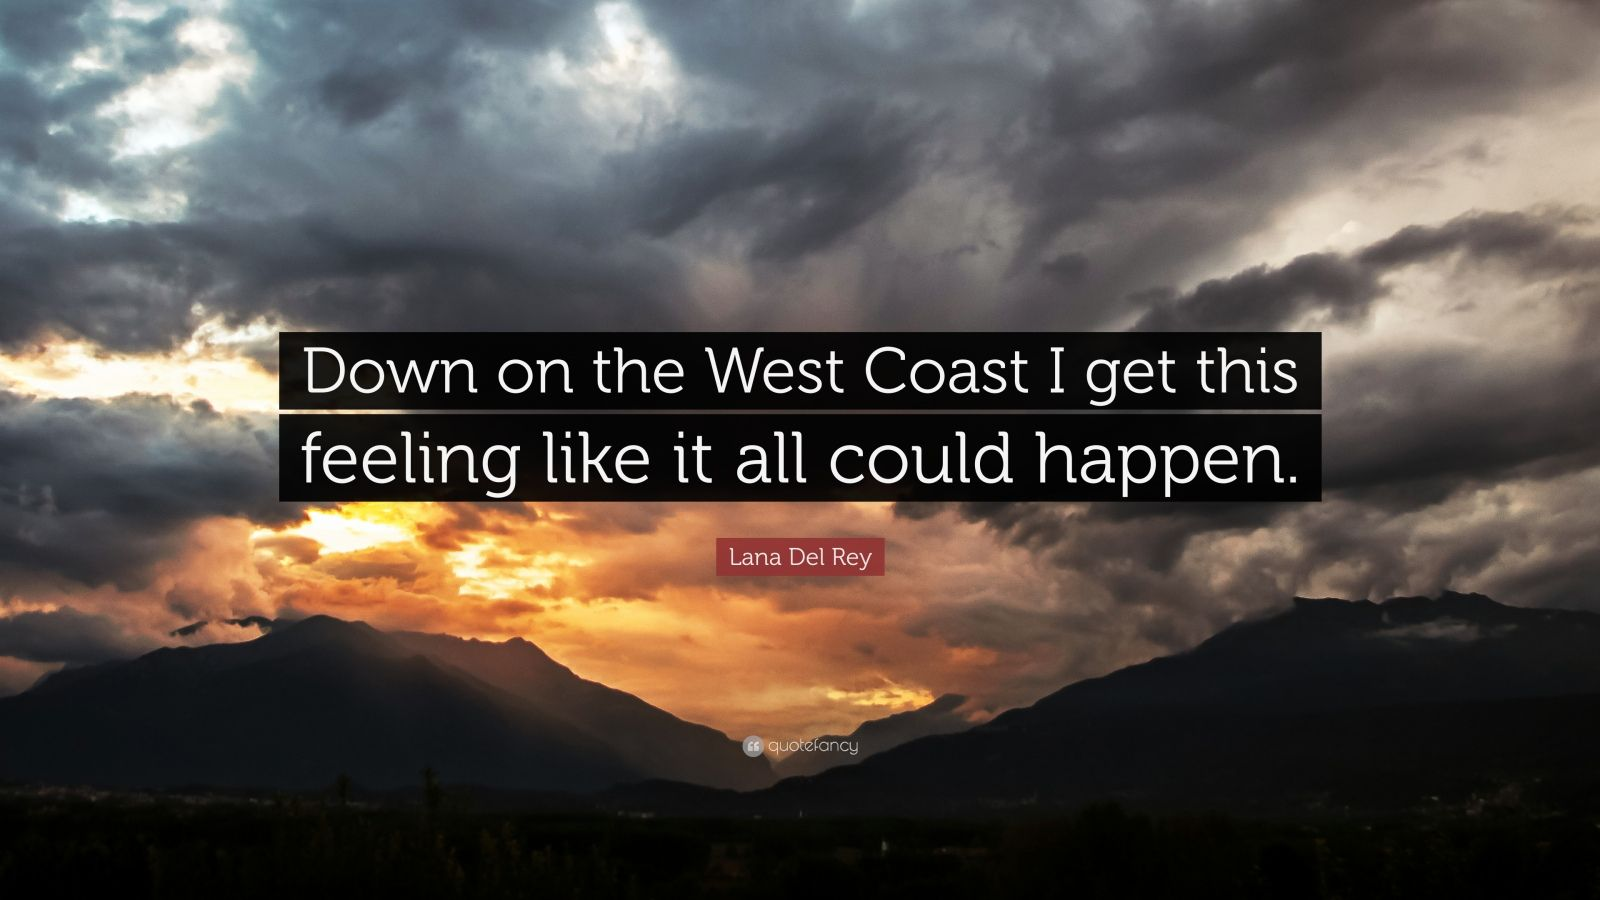 """Lana Del Rey Quote: """"Down on the West Coast I get this feeling like it all could happen."""""""